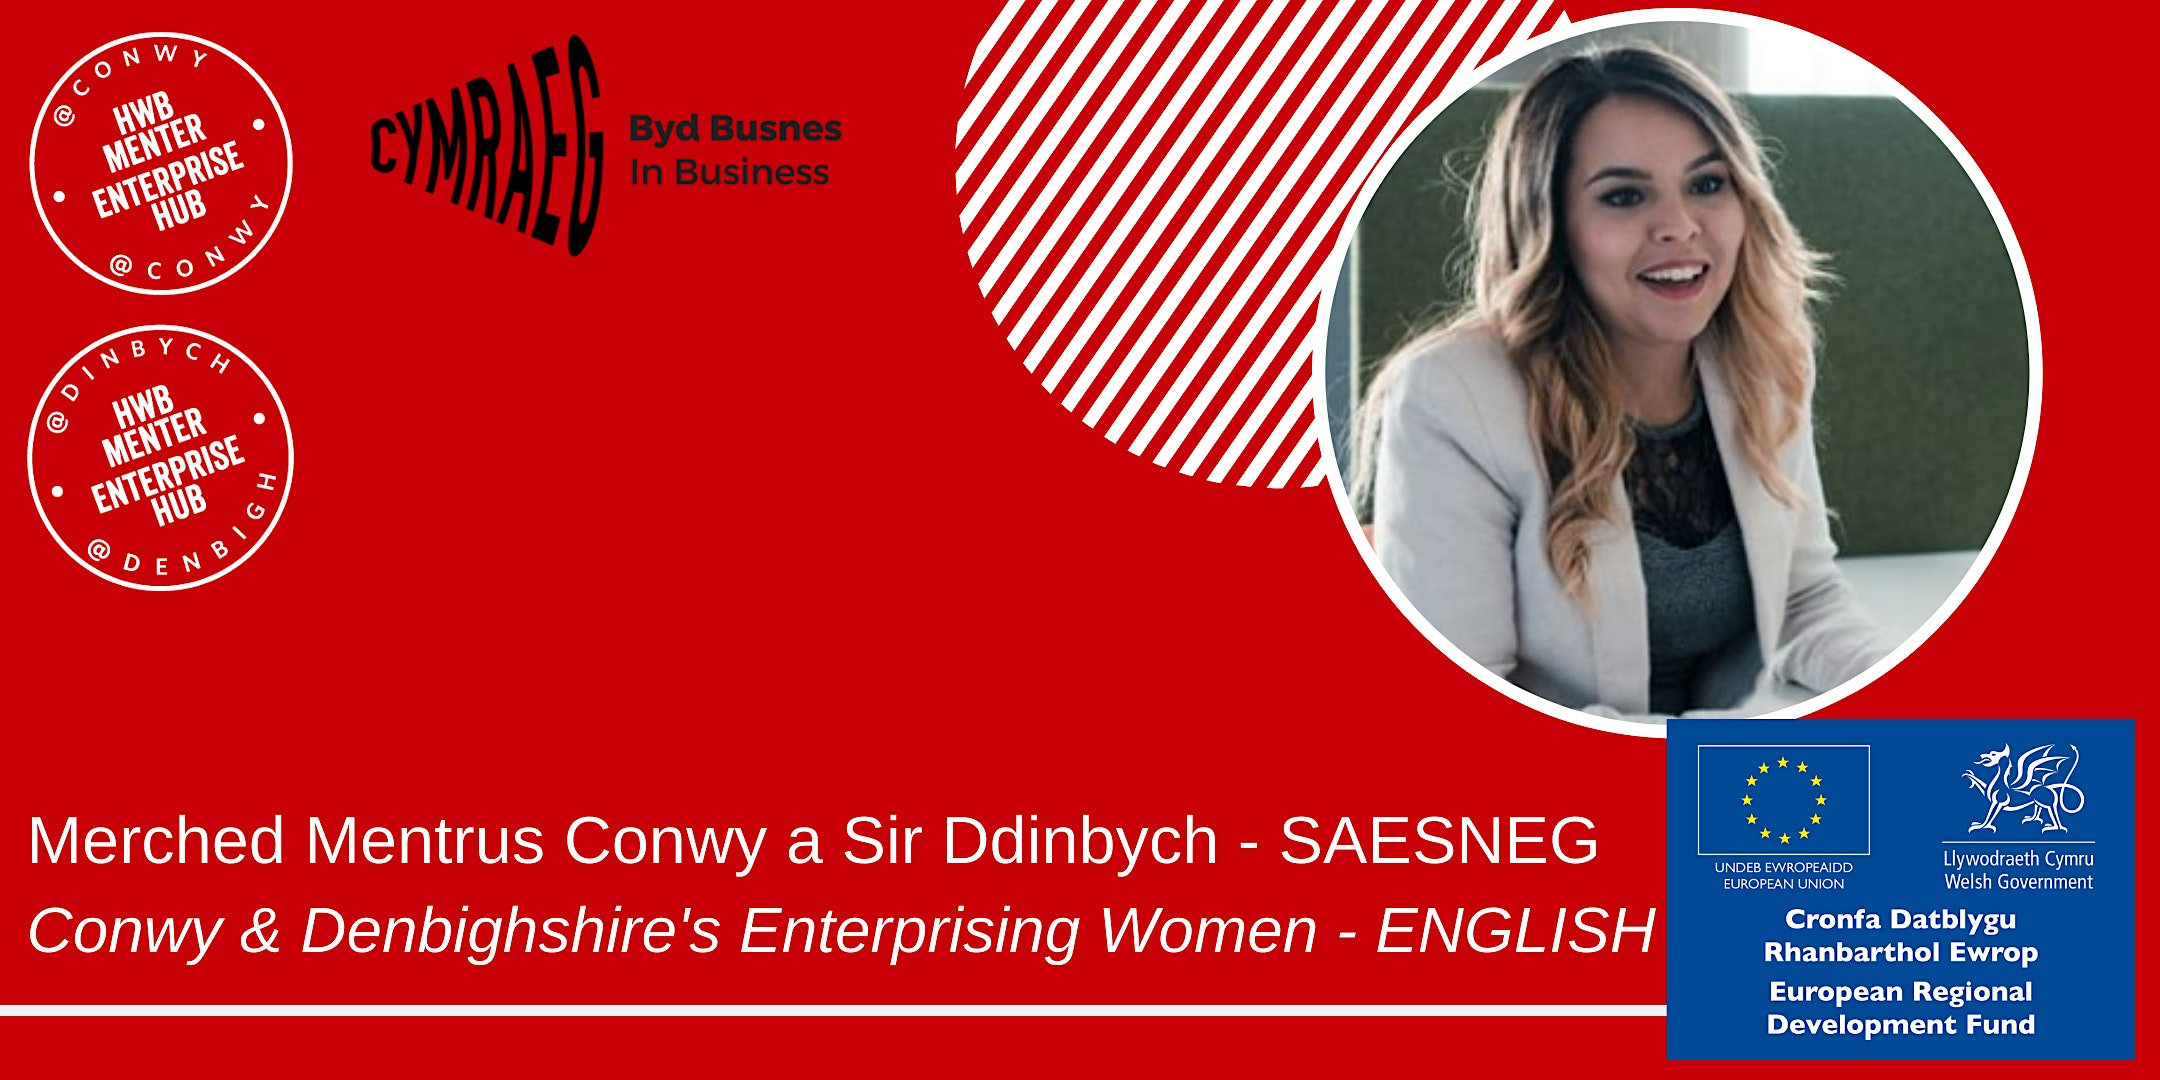 Covid-19: Conwy & Denbighshire's Enterprising Women - ENGLISH Meet-Up